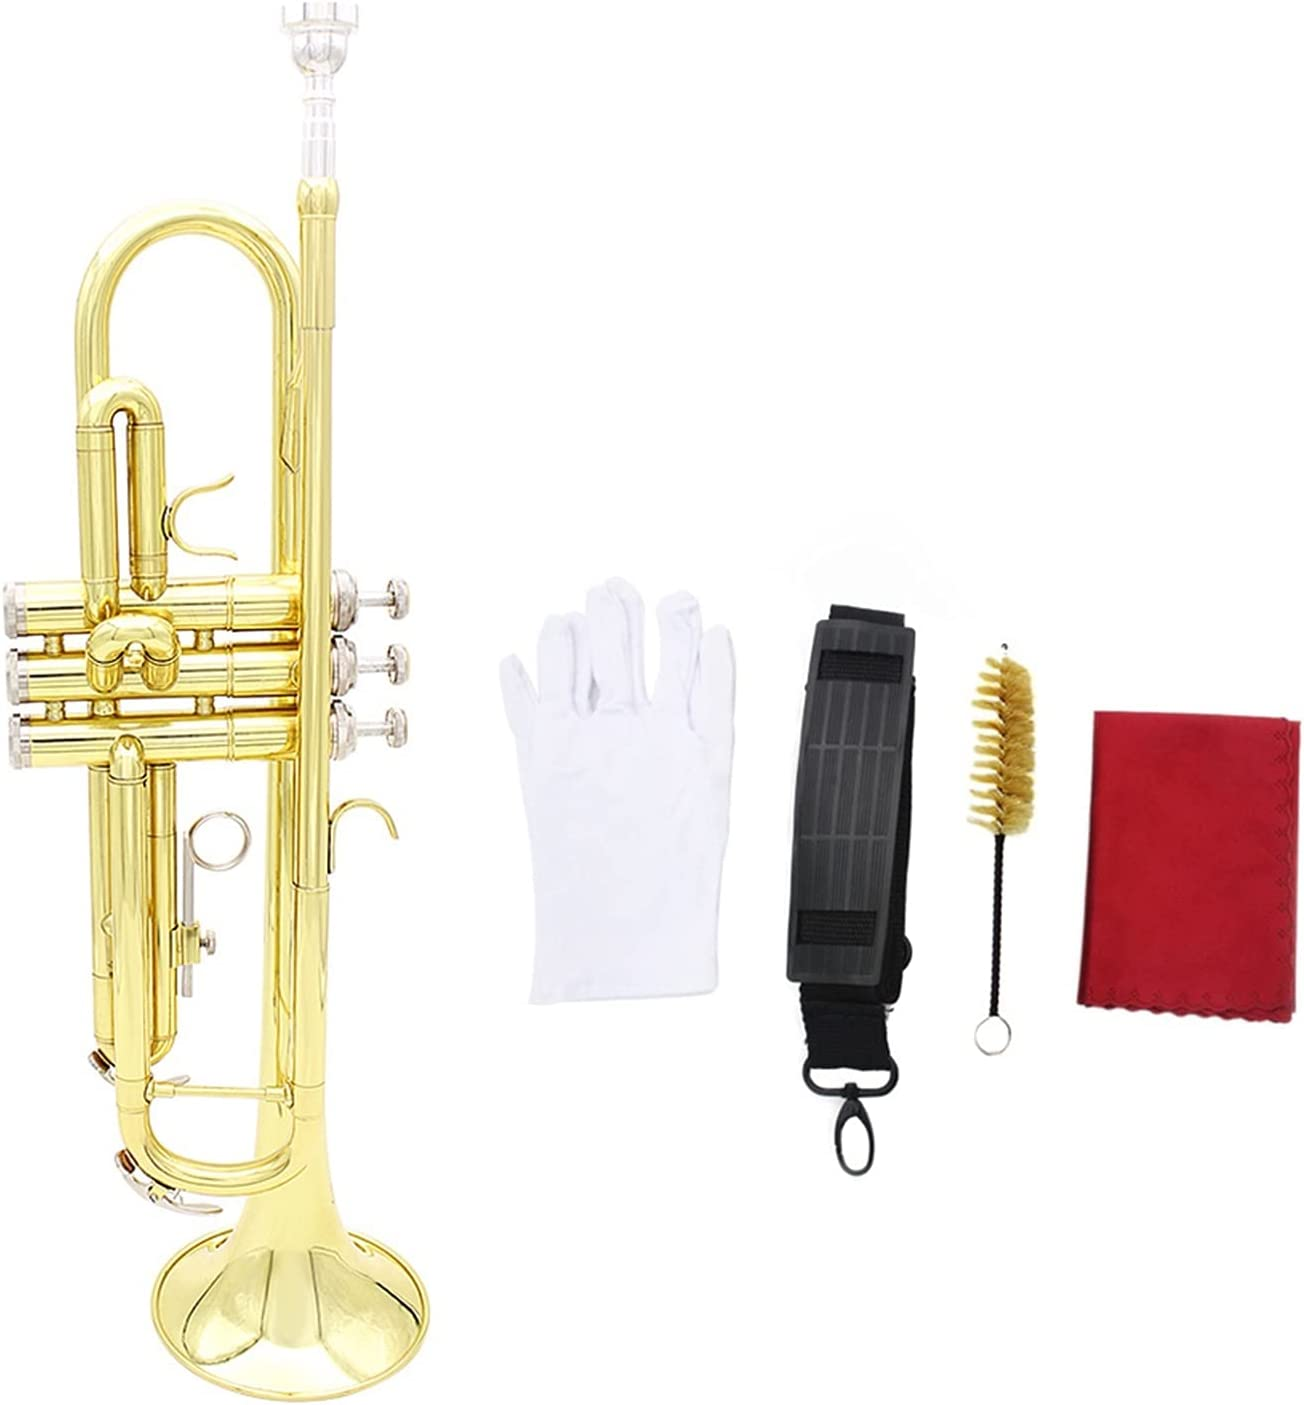 Standard ! Super beauty product restock quality top! Sacramento Mall Trumpets Trumpet Bb B Silver-Plated Flat Exquisit Brass